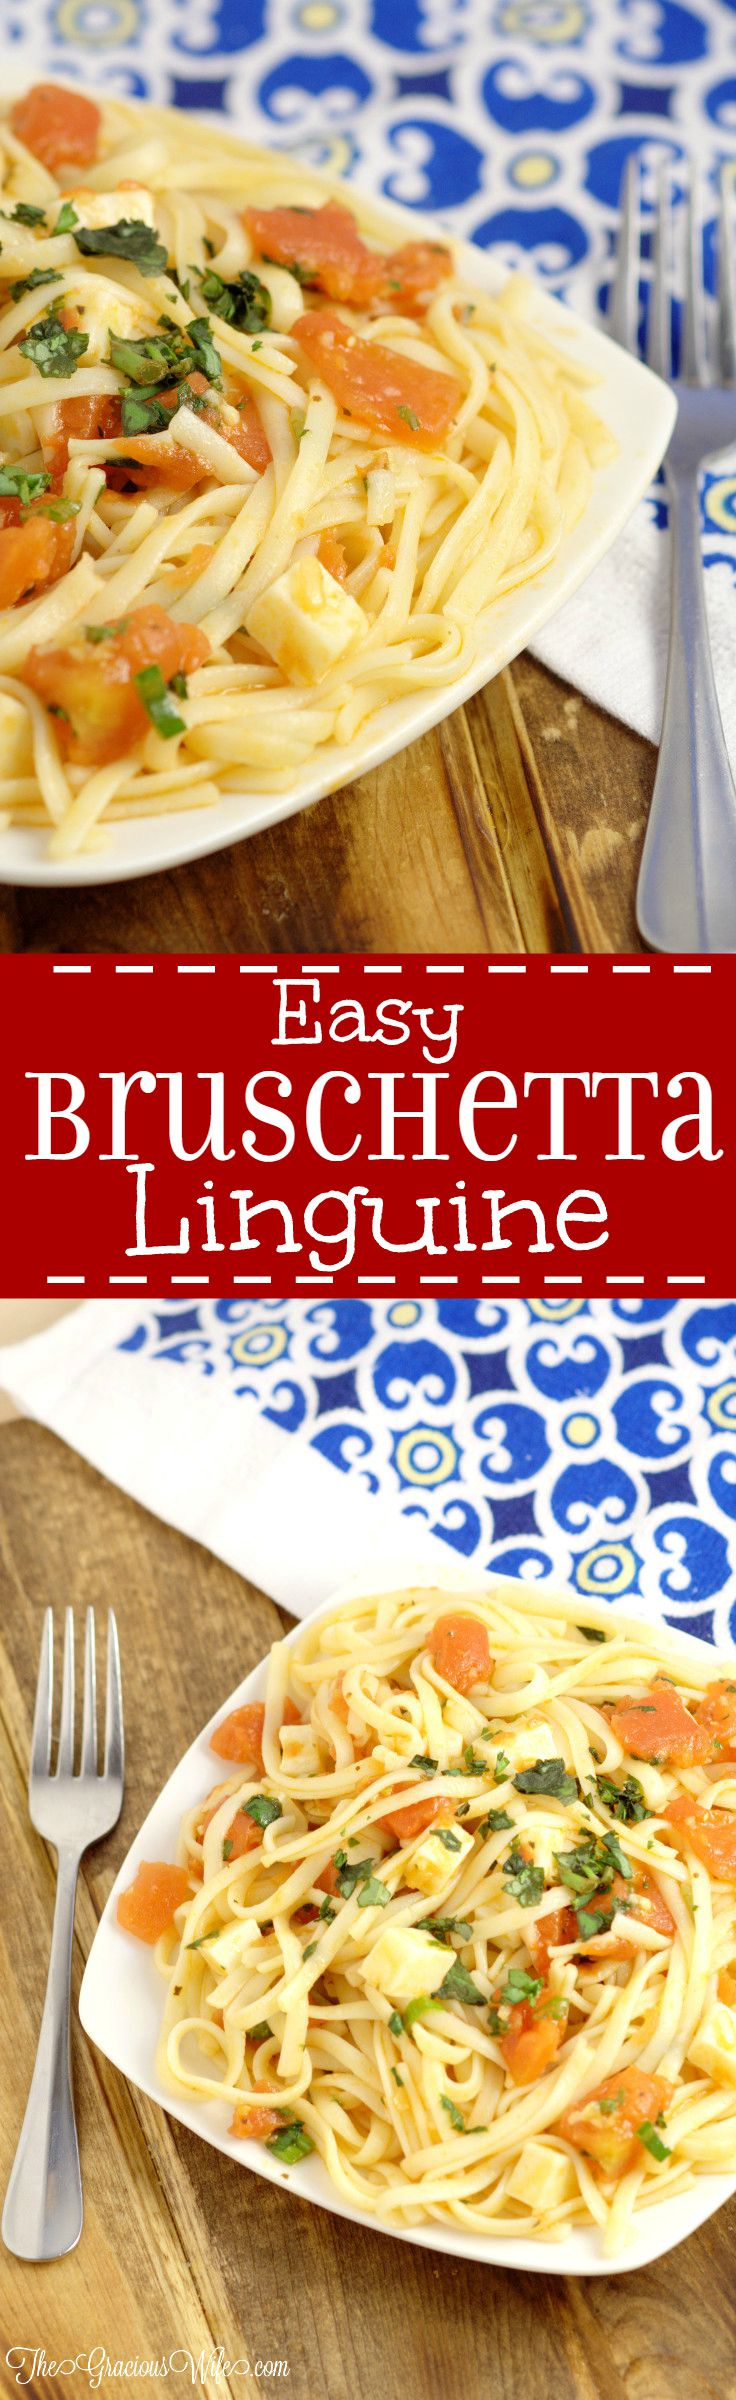 Easy Bruschetta Linguine Pasta Recipe - an easy pasta dinner idea recipe with tomatoes, garlic, basil, and mozzarella. Super easy and super delicious!